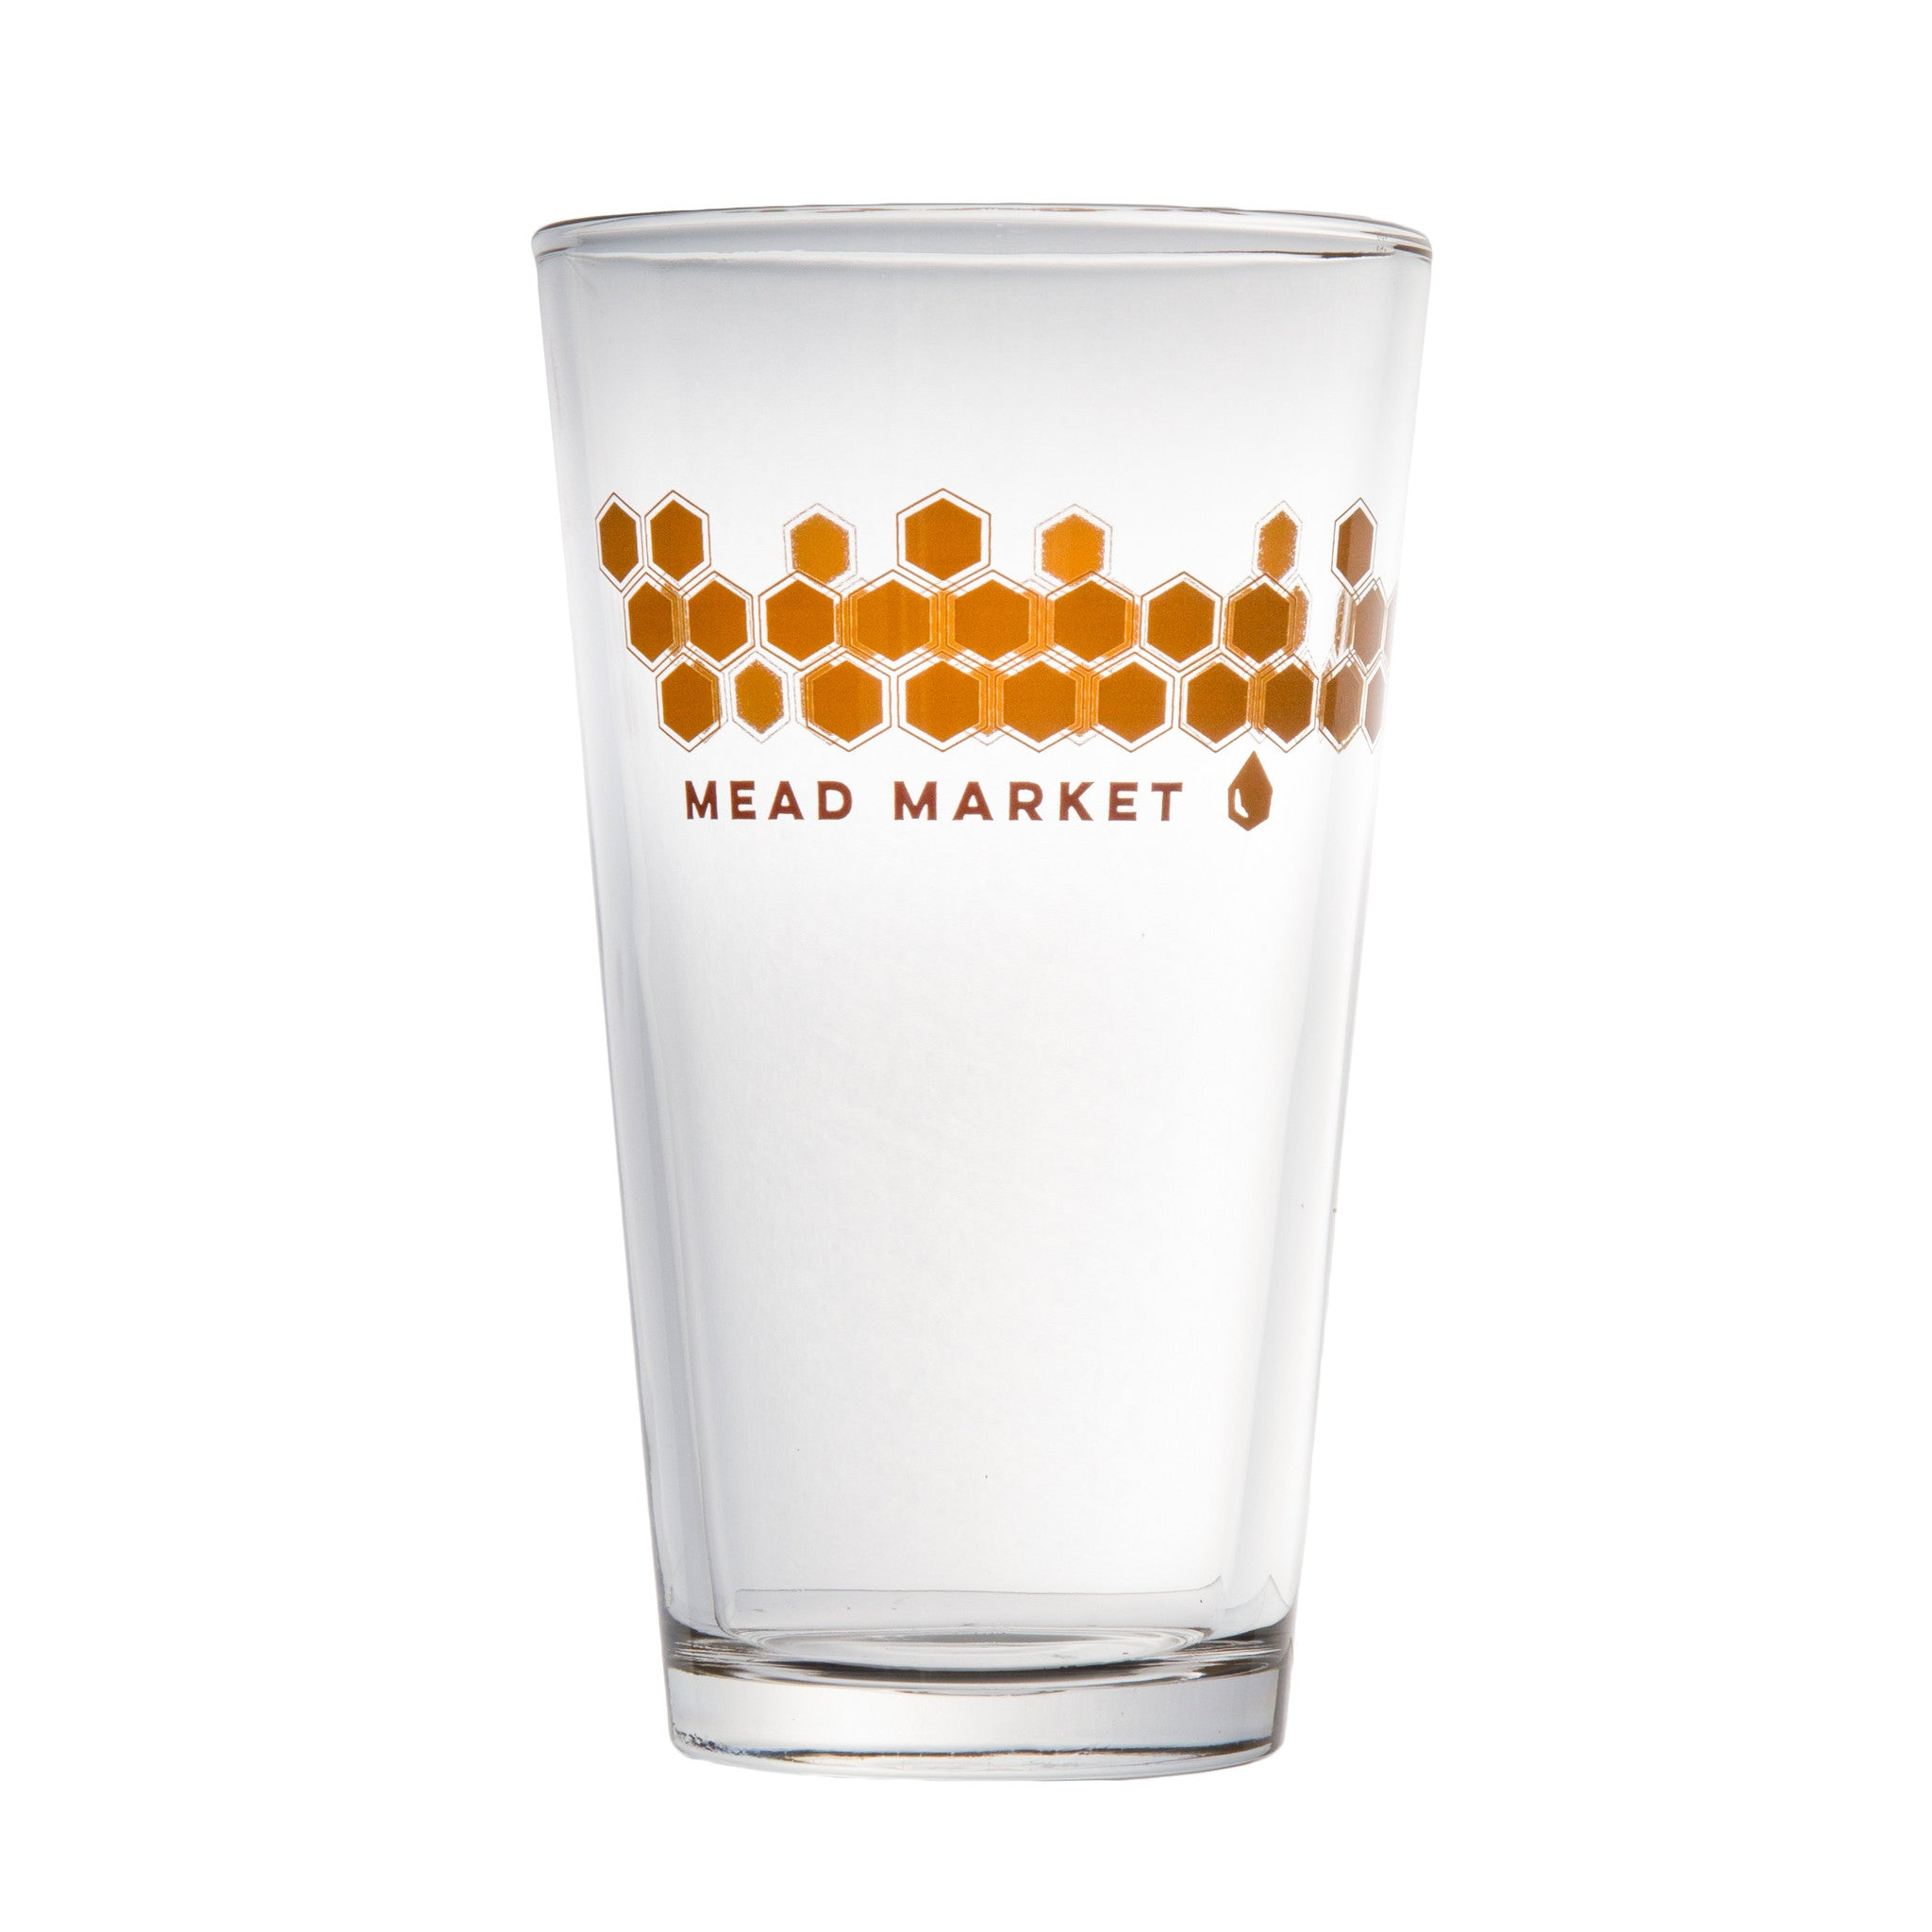 Mead Market Pint Glass